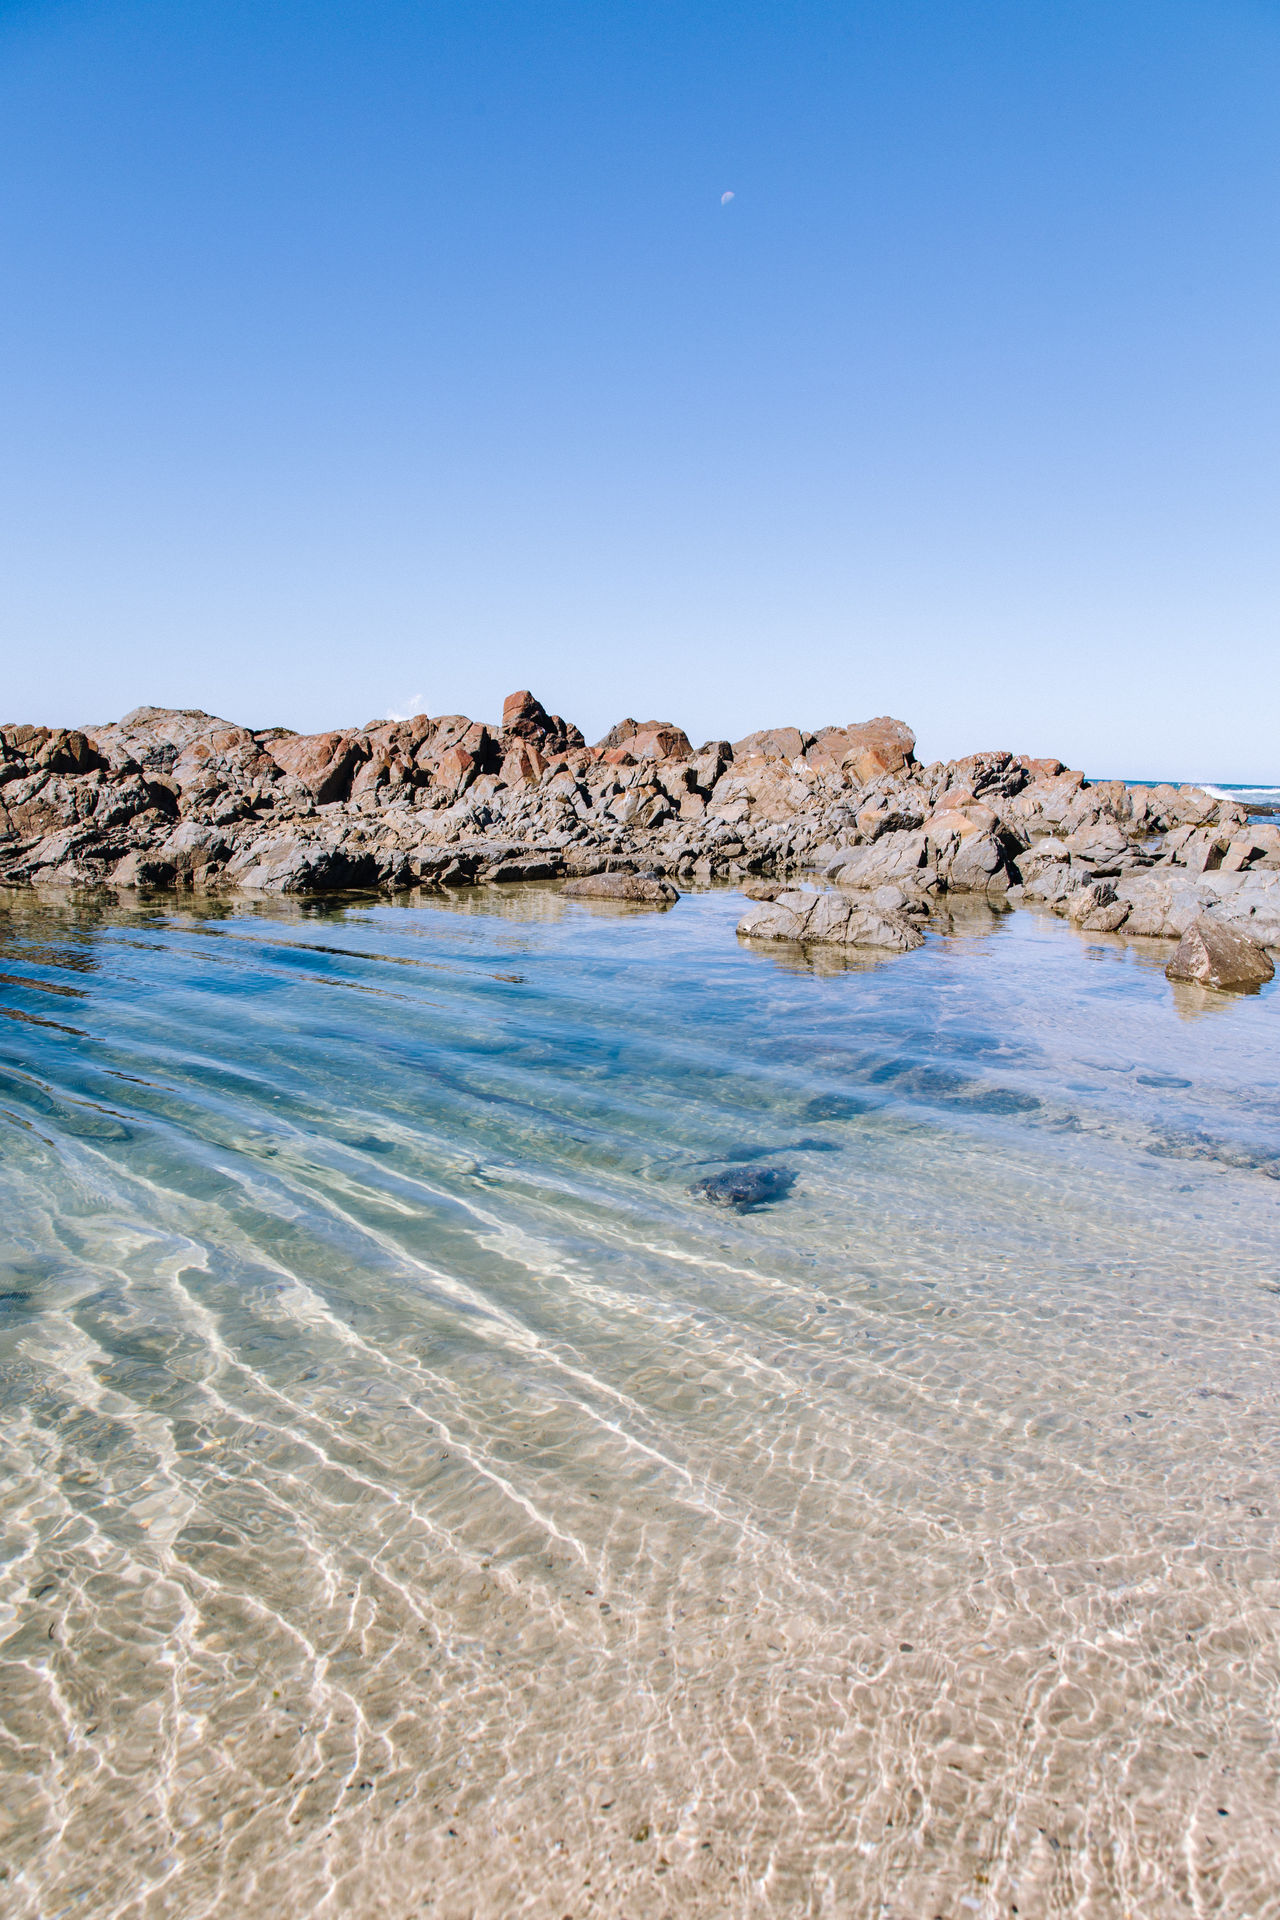 Rock pool Beach Beauty In Nature Blue Clear Sky Day Landscape Nature No People Outdoors Rock - Object Sand Scenics Sea Sky Tranquil Scene Tranquility Travel Destinations Water